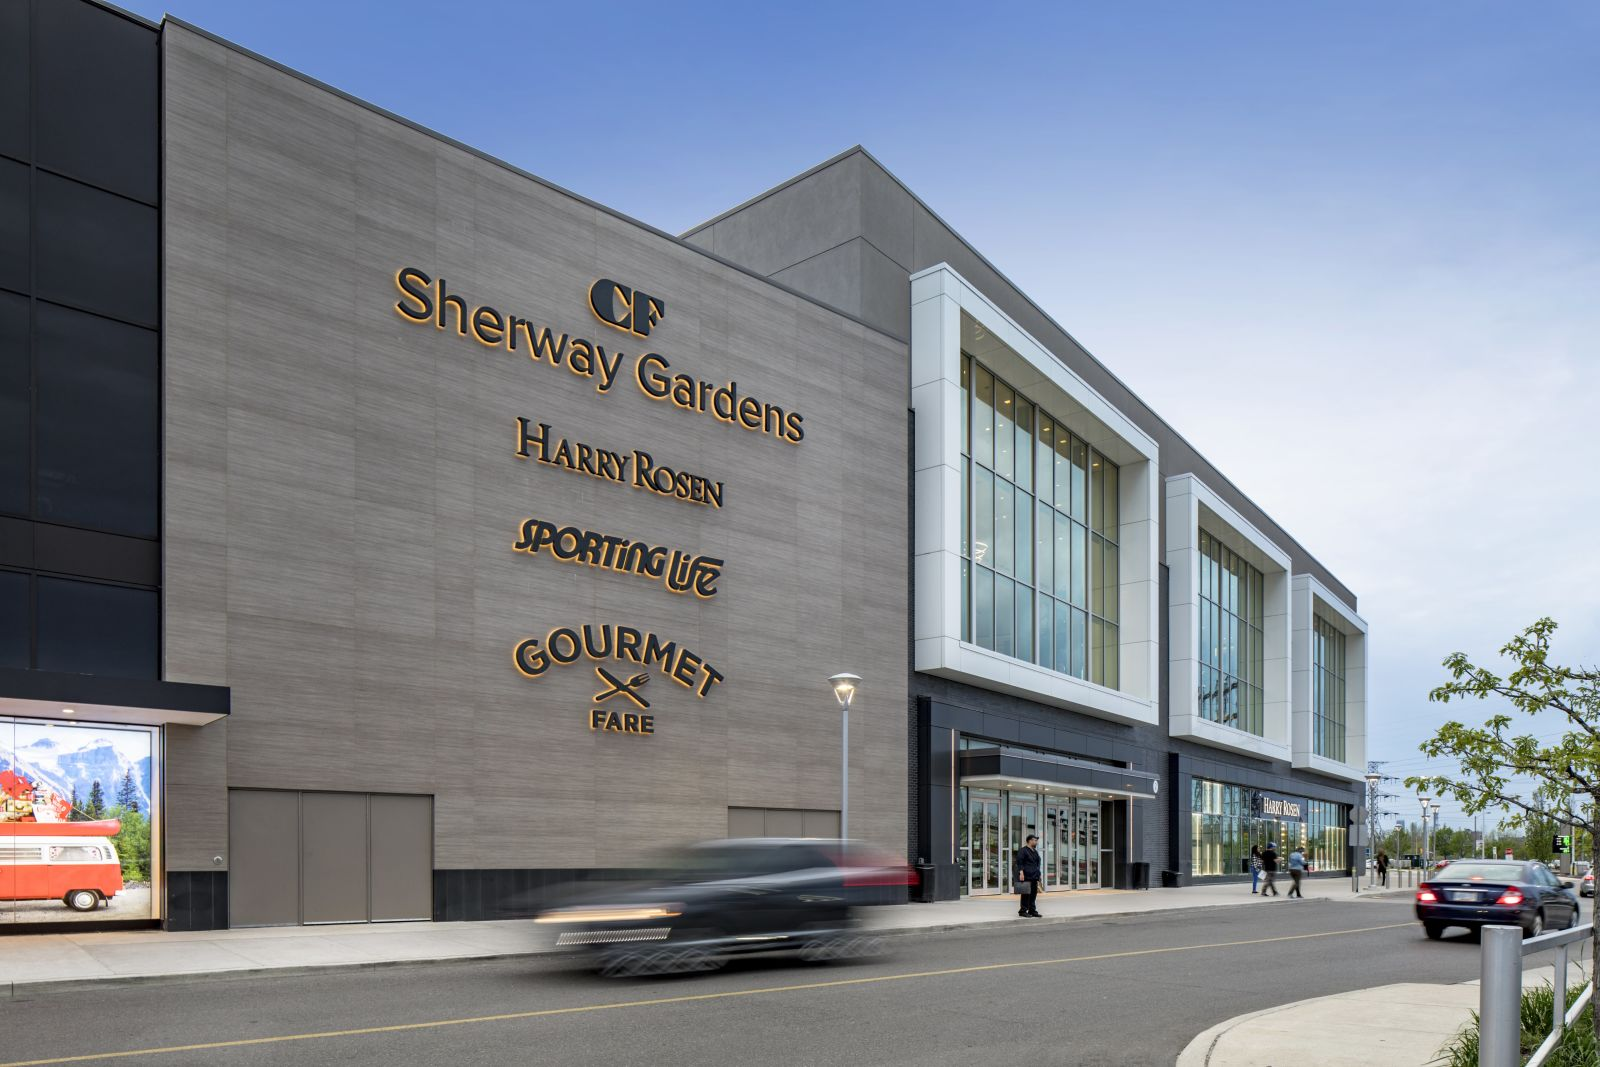 CF Sherway Gardens is a shopping centre located in Etobicoke, west of Toronto Pearson Airport. Explore over 200 stores, and restaurants at this Toronto mall.